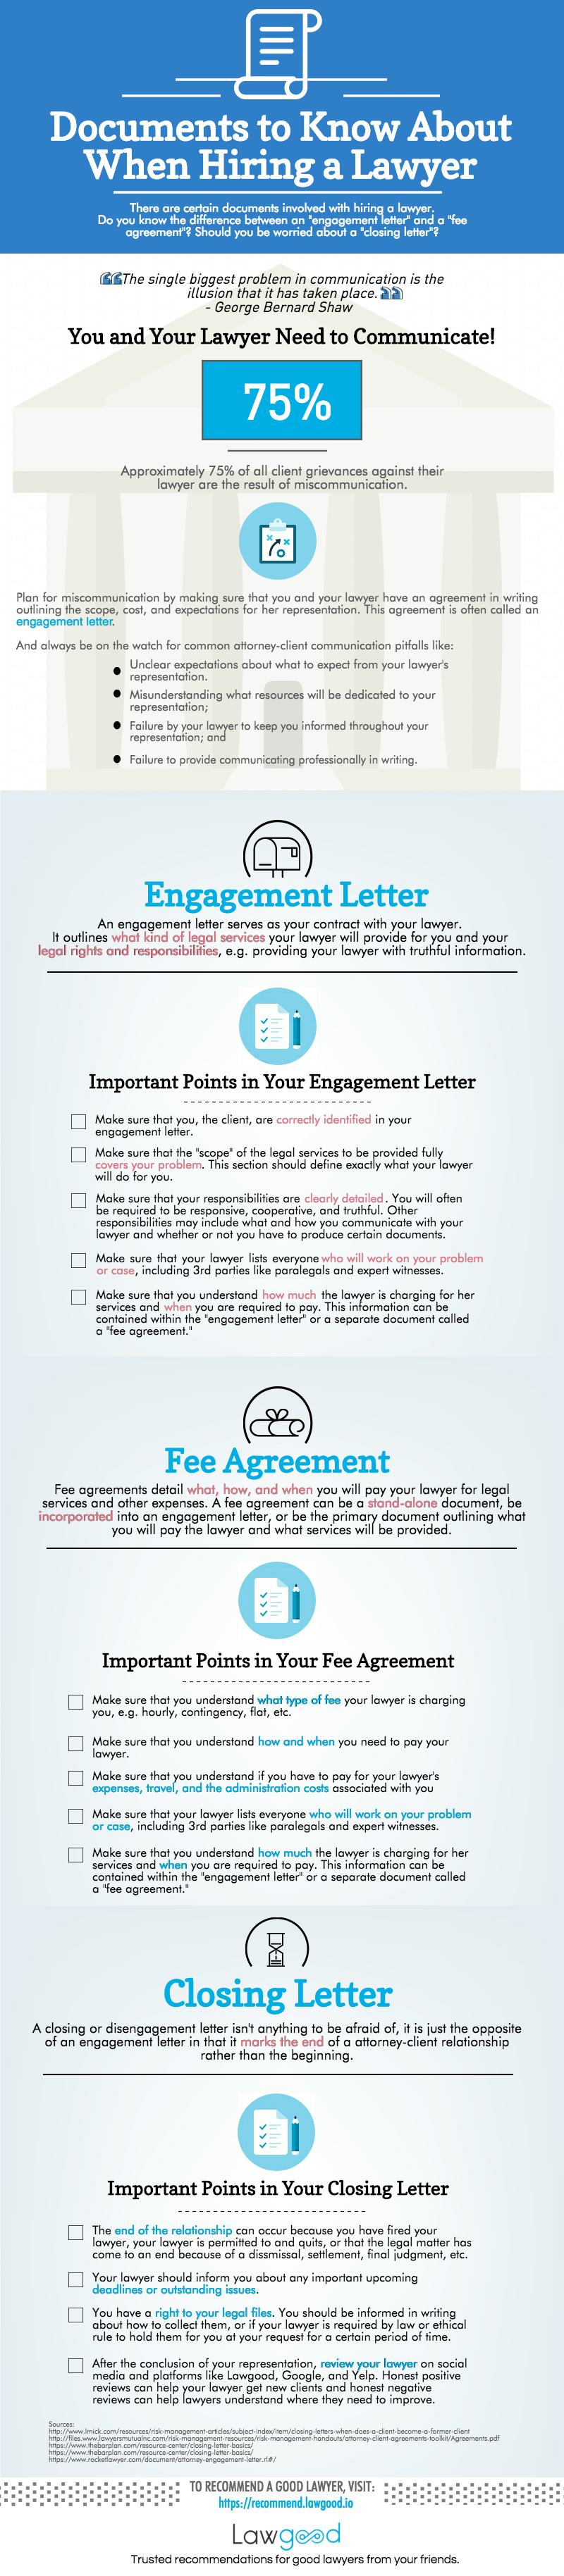 Know what kind of documents you'll be presented with when you hire a lawyer.